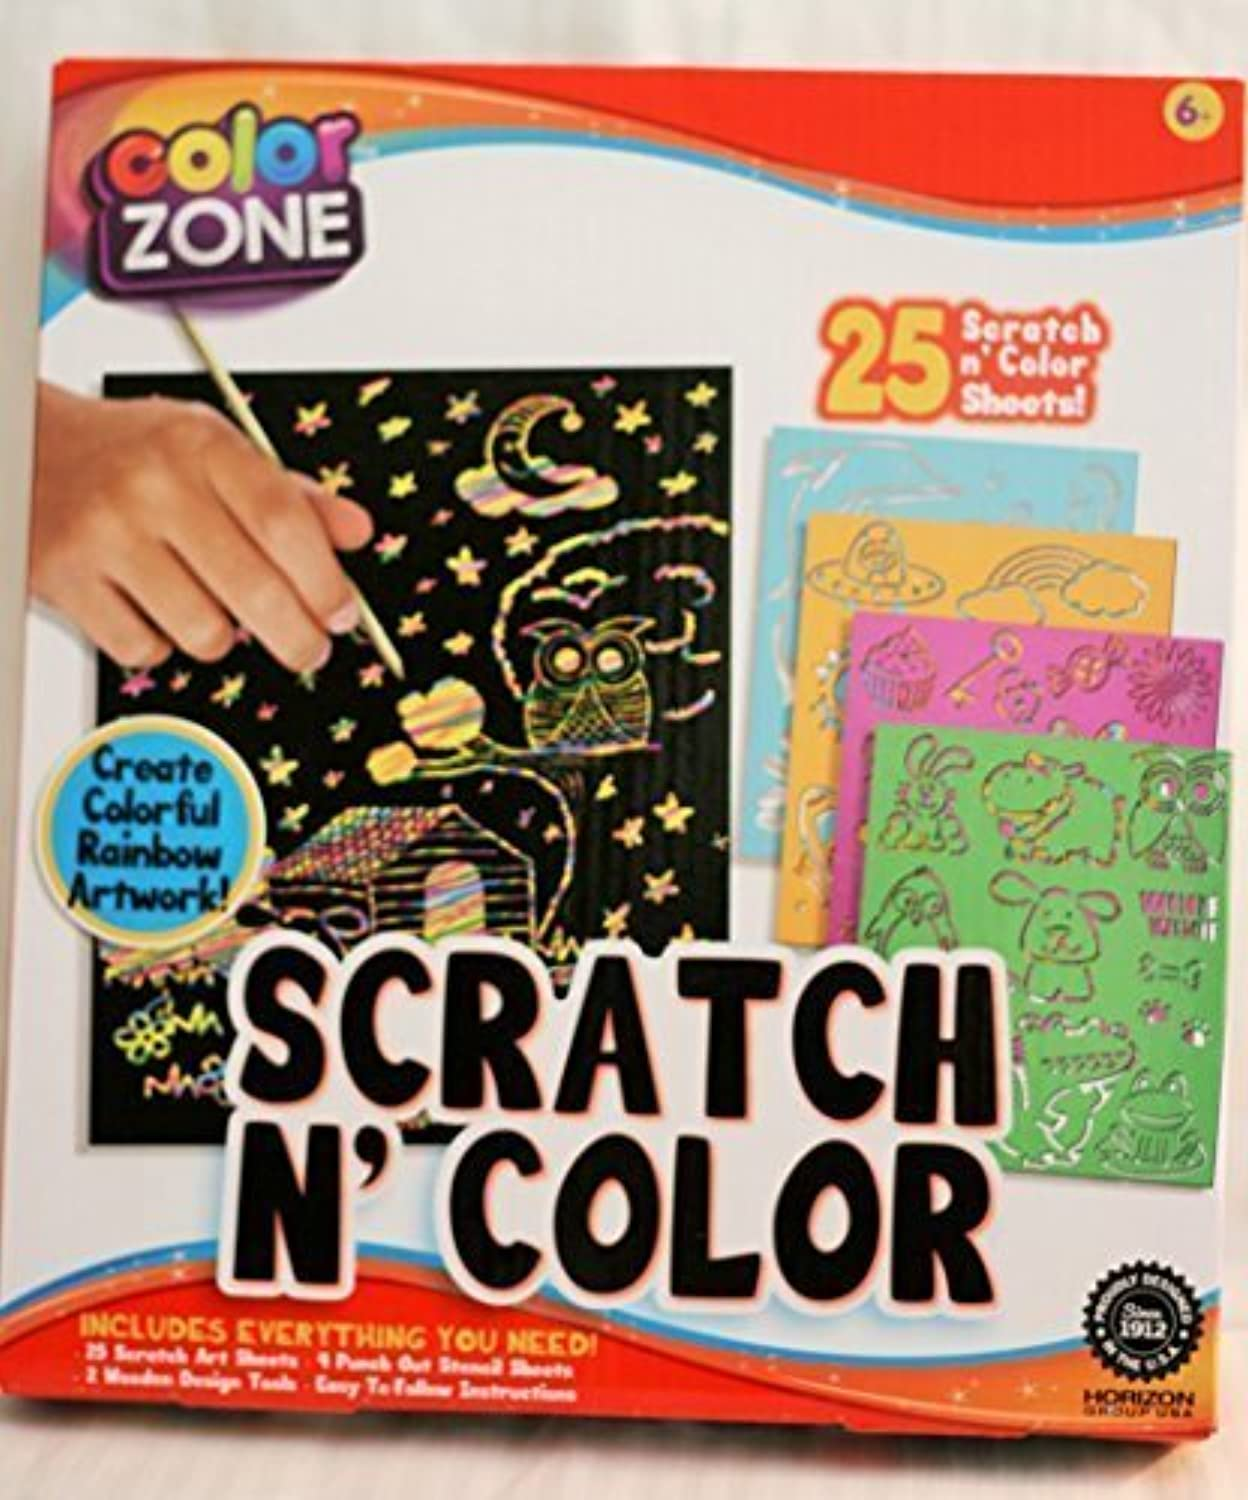 color Zone Scratch N color by color Zone